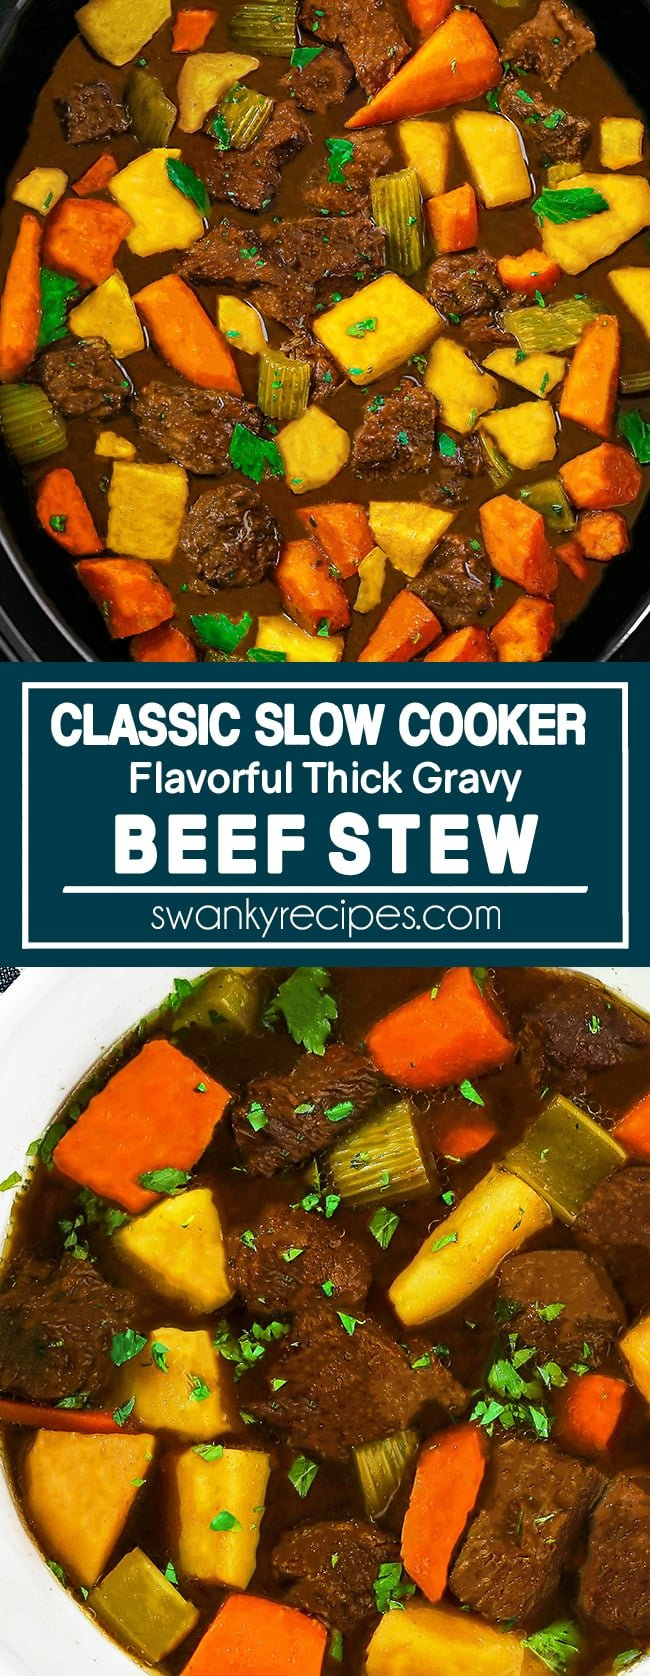 Slow Cooker Beef Stew - An image with two photos. First photo is a close up of beef stew in a black slow cooker. Features small pieces of slow cooked beef in a brown gravy with chunks of yellow potatoes, carrots, and a few pieces of celery and chopped celery leaves. TEXT says Classic Slow Cooker Flavorful Thick Gravy Beef Stew with a blue background and white border/text. Second images is a soup bowl close up with pieces of stew meat, potatoes, carrots, celery, celery leaves in a brown broth.